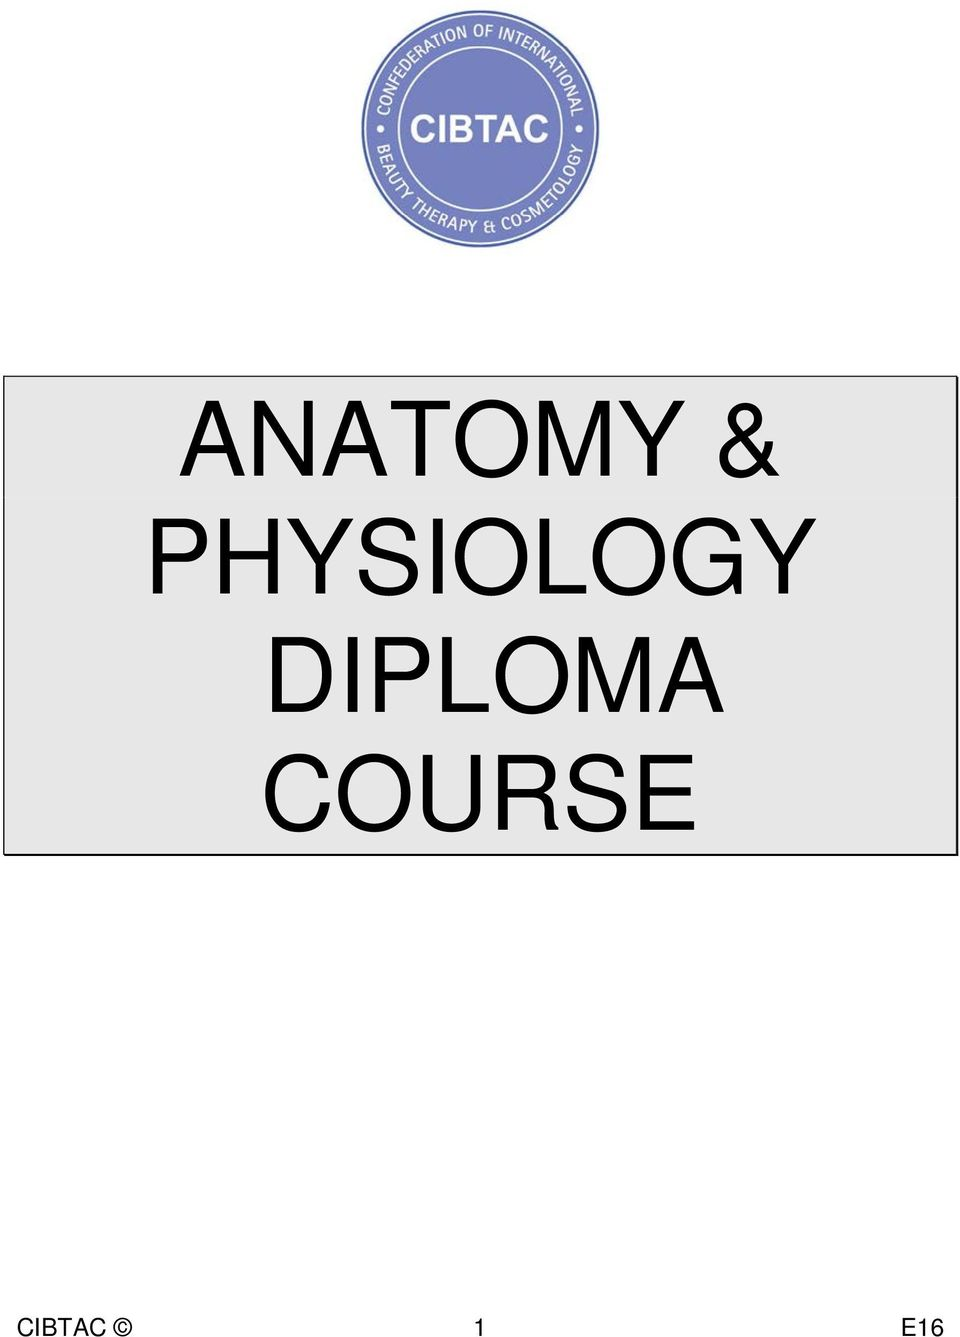 ANATOMY & PHYSIOLOGY DIPLOMA COURSE - PDF